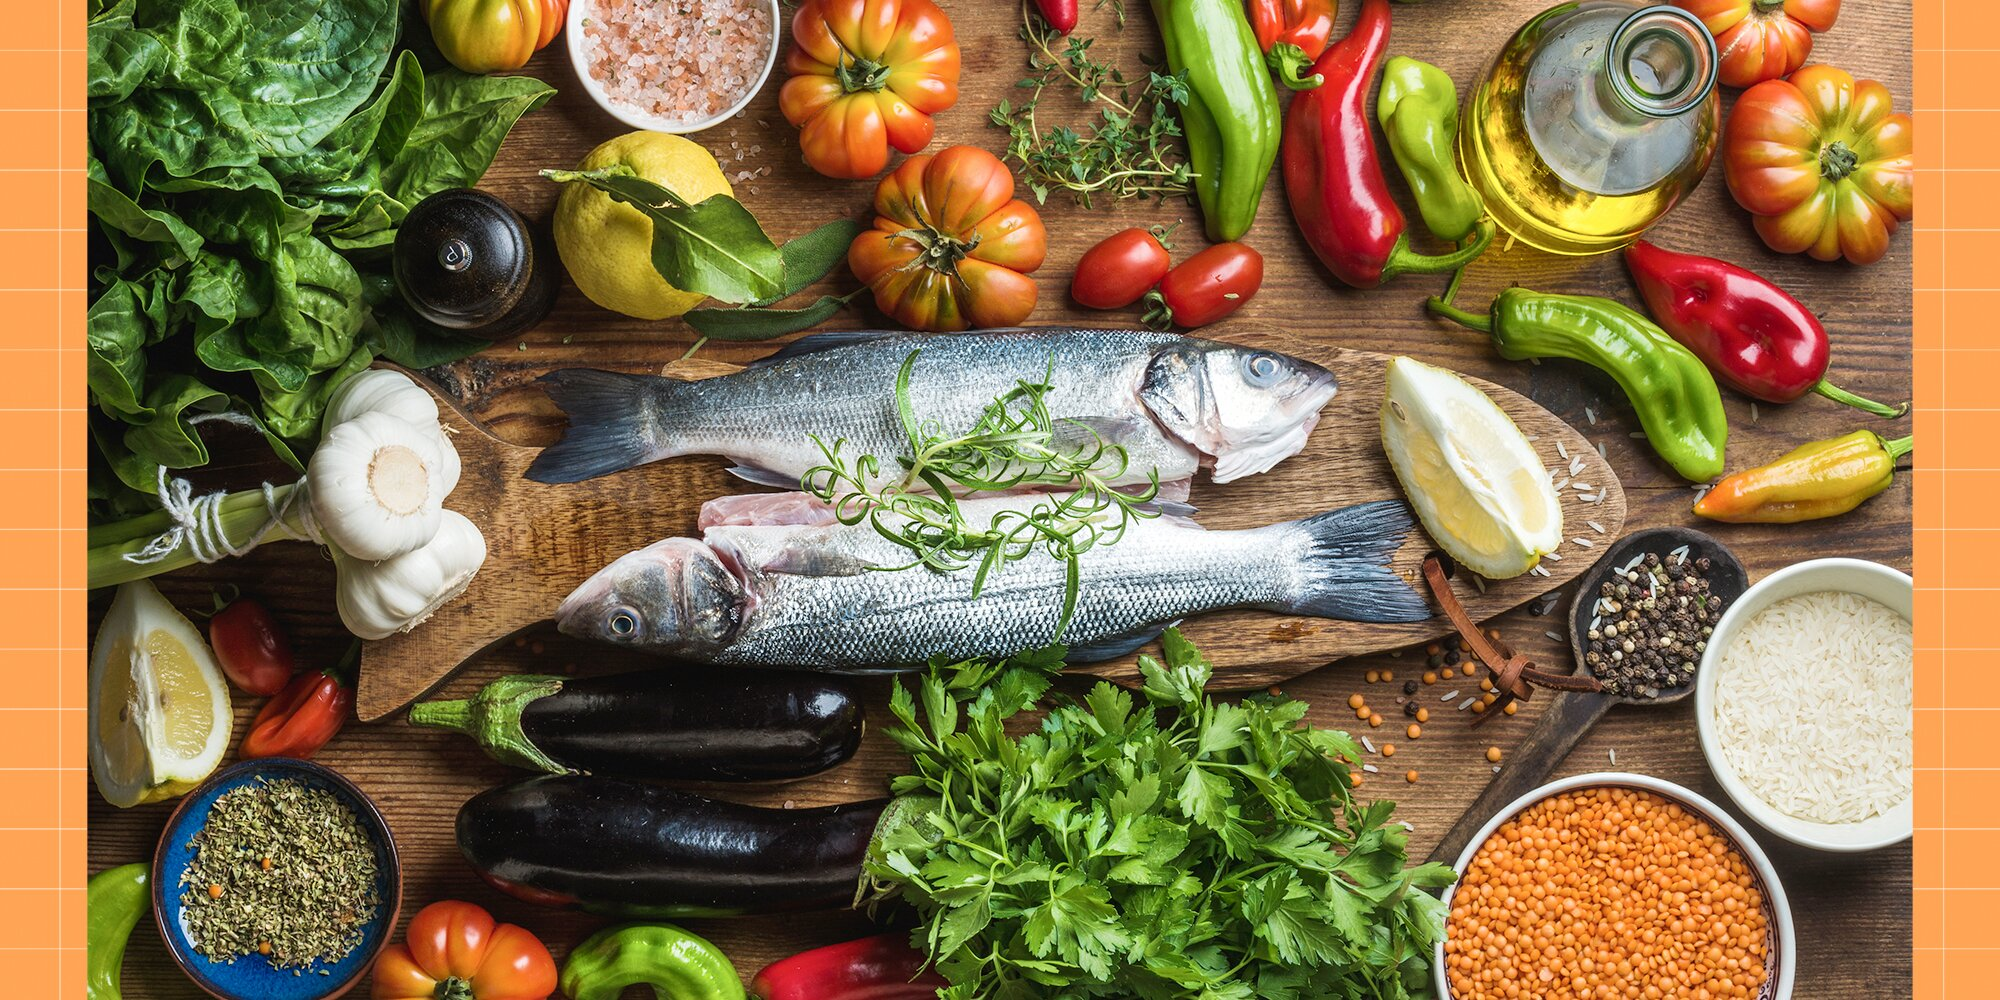 6 Things I Wish I Knew Before Starting the Mediterranean Diet